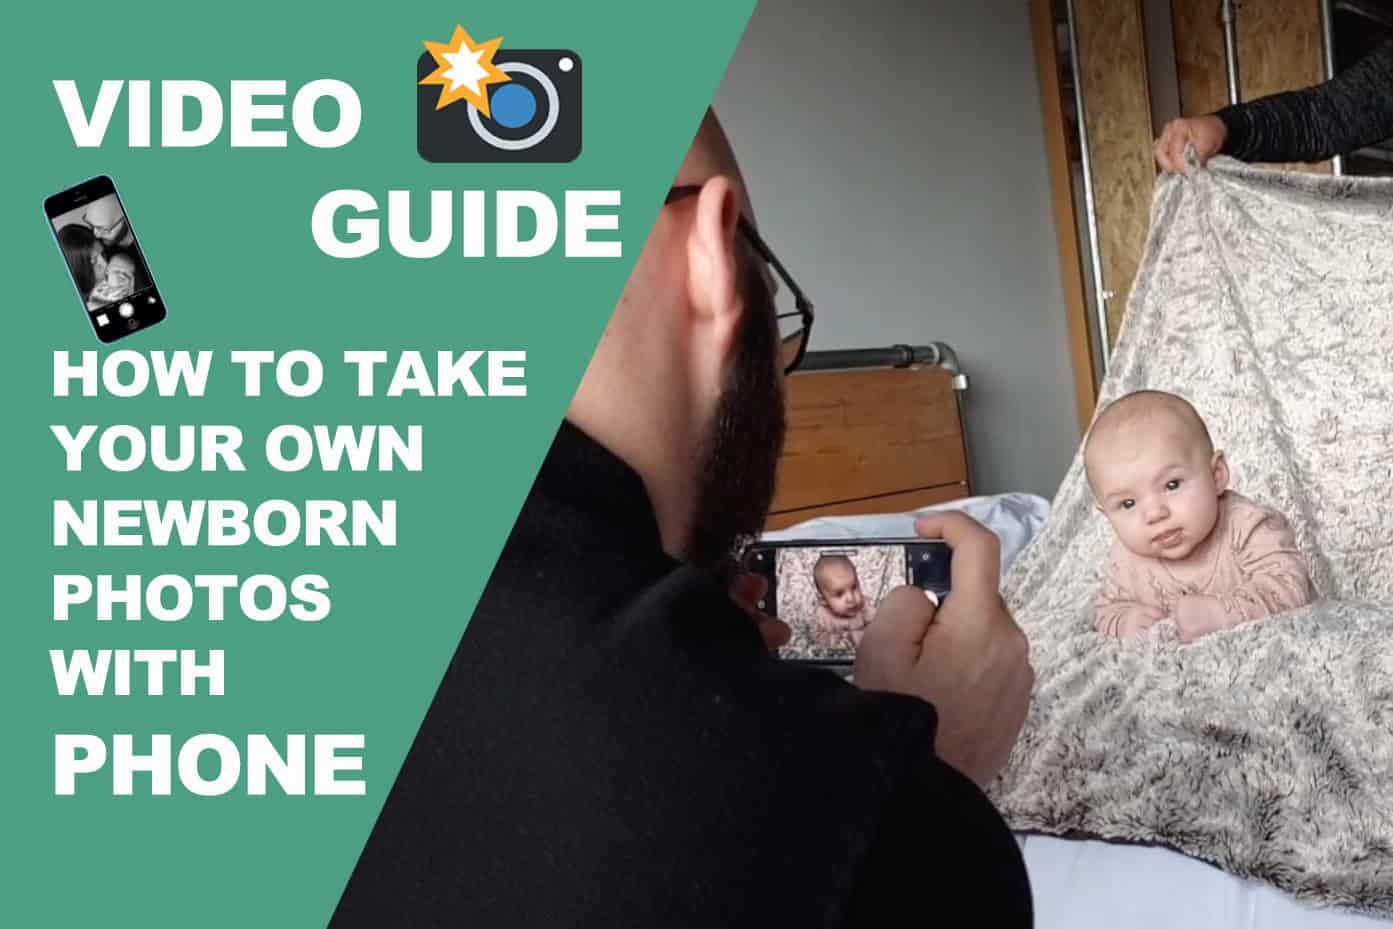 Video Tips Guide on How To Take Your Own DIY Newborn Photos at Home Using Phone 10